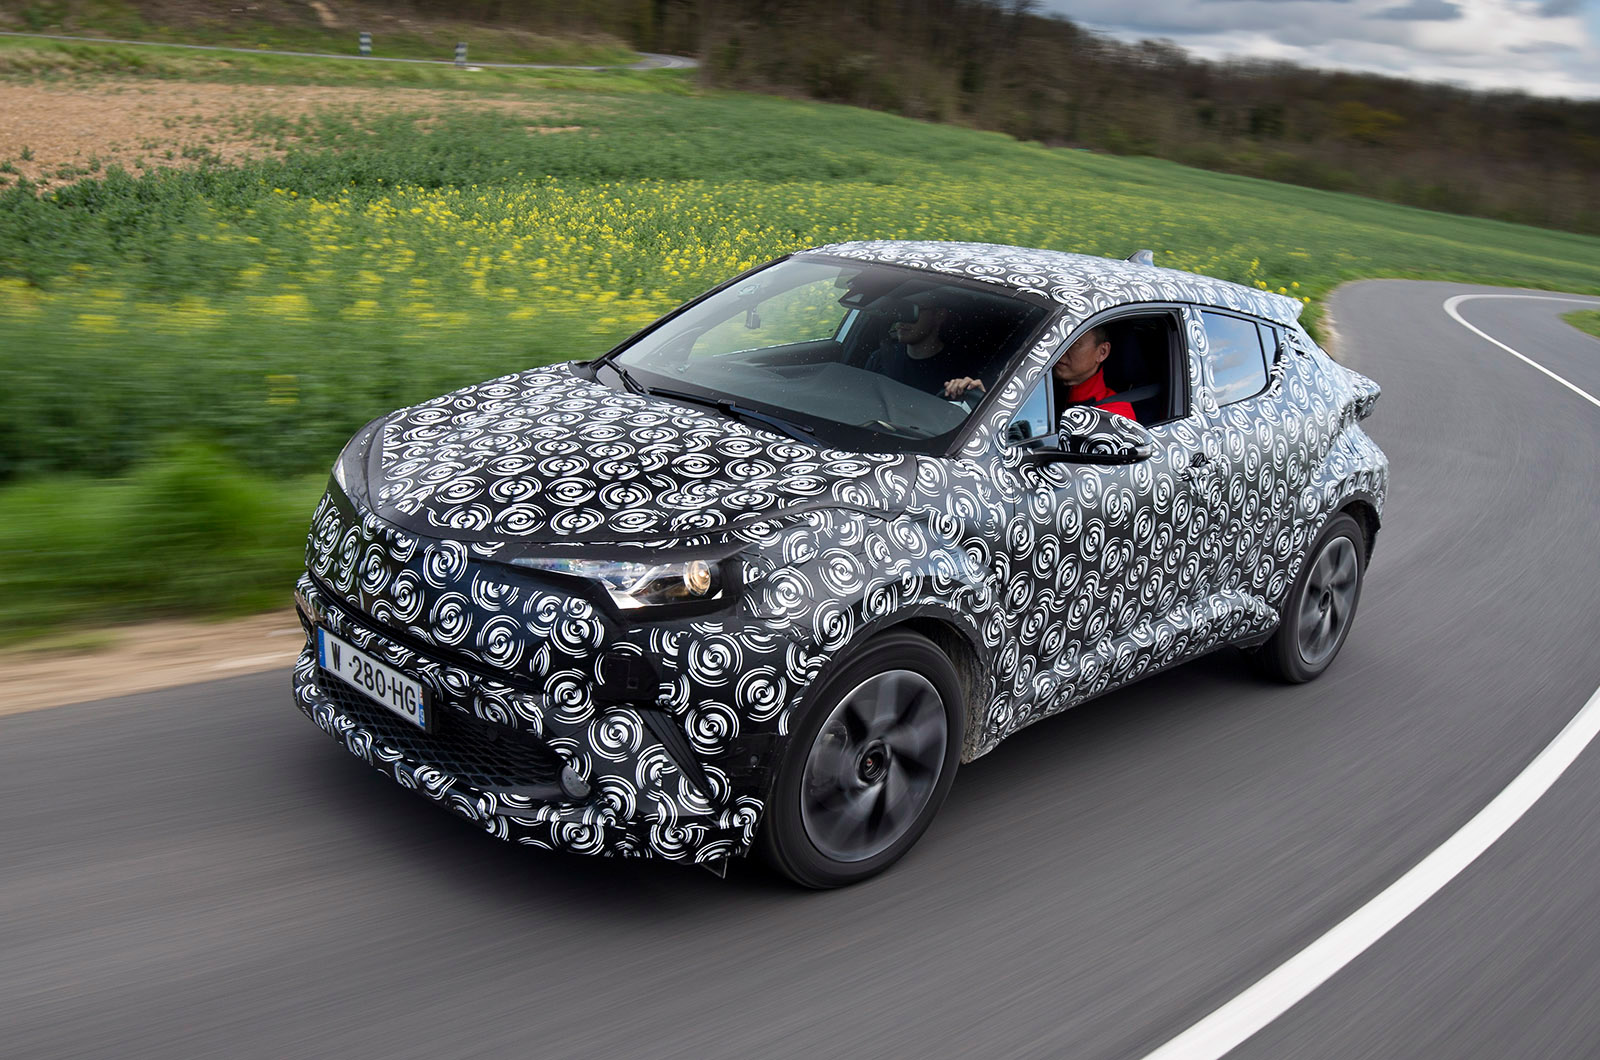 Car seating capacity compact crossover cars toyota cars toyota chr - Car Seating Capacity Compact Crossover Cars Toyota Cars Toyota Chr 45